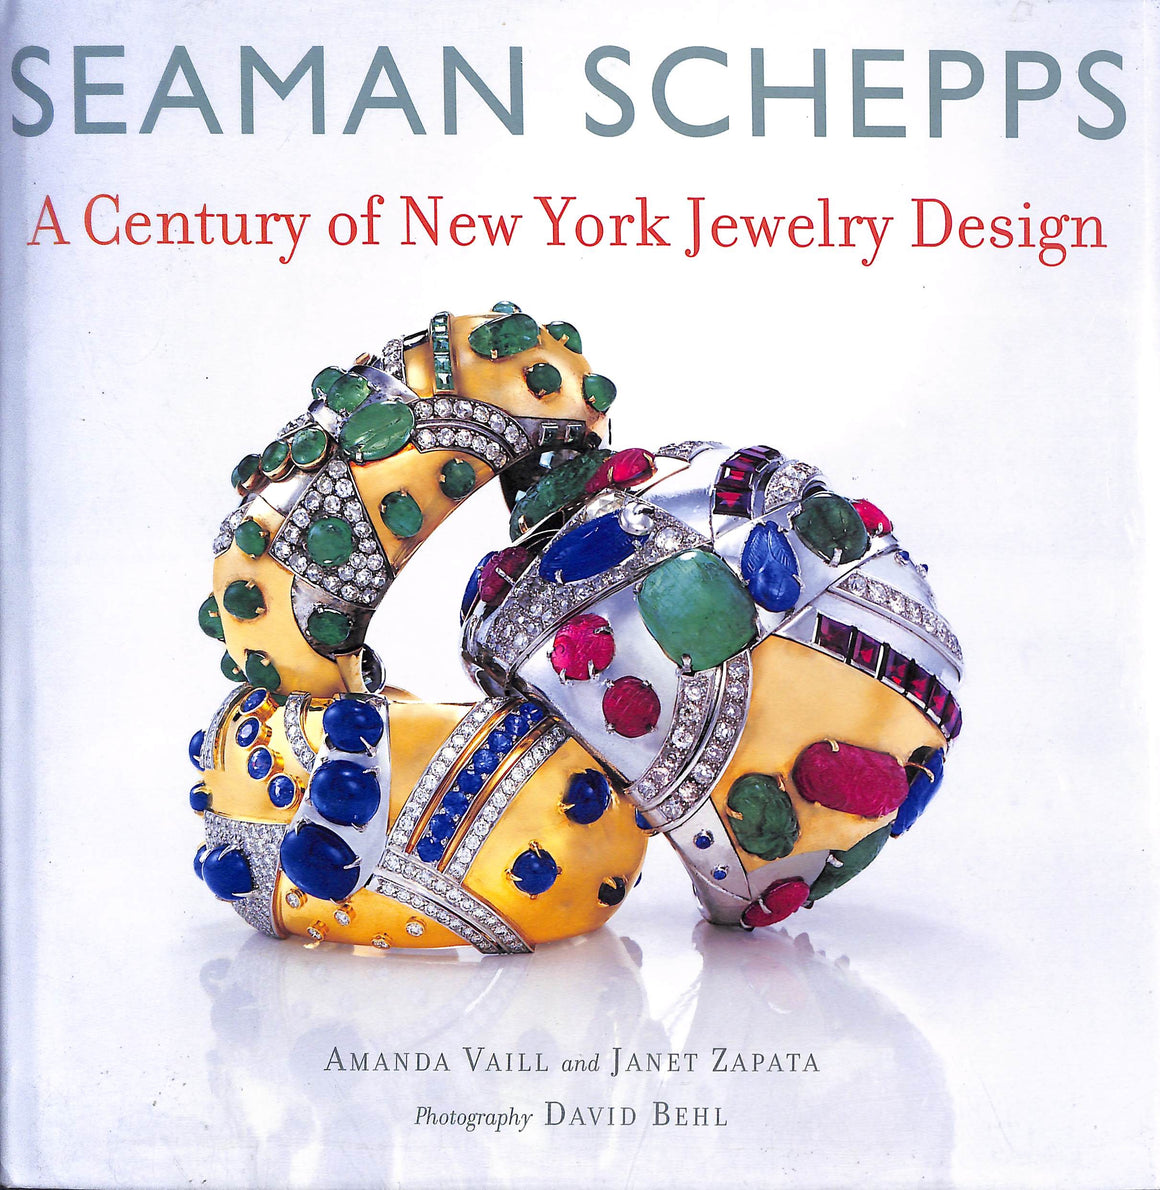 Seaman Schepps: A Century of New York Jewelry Design by Amanda Vaill and Janet Zapata